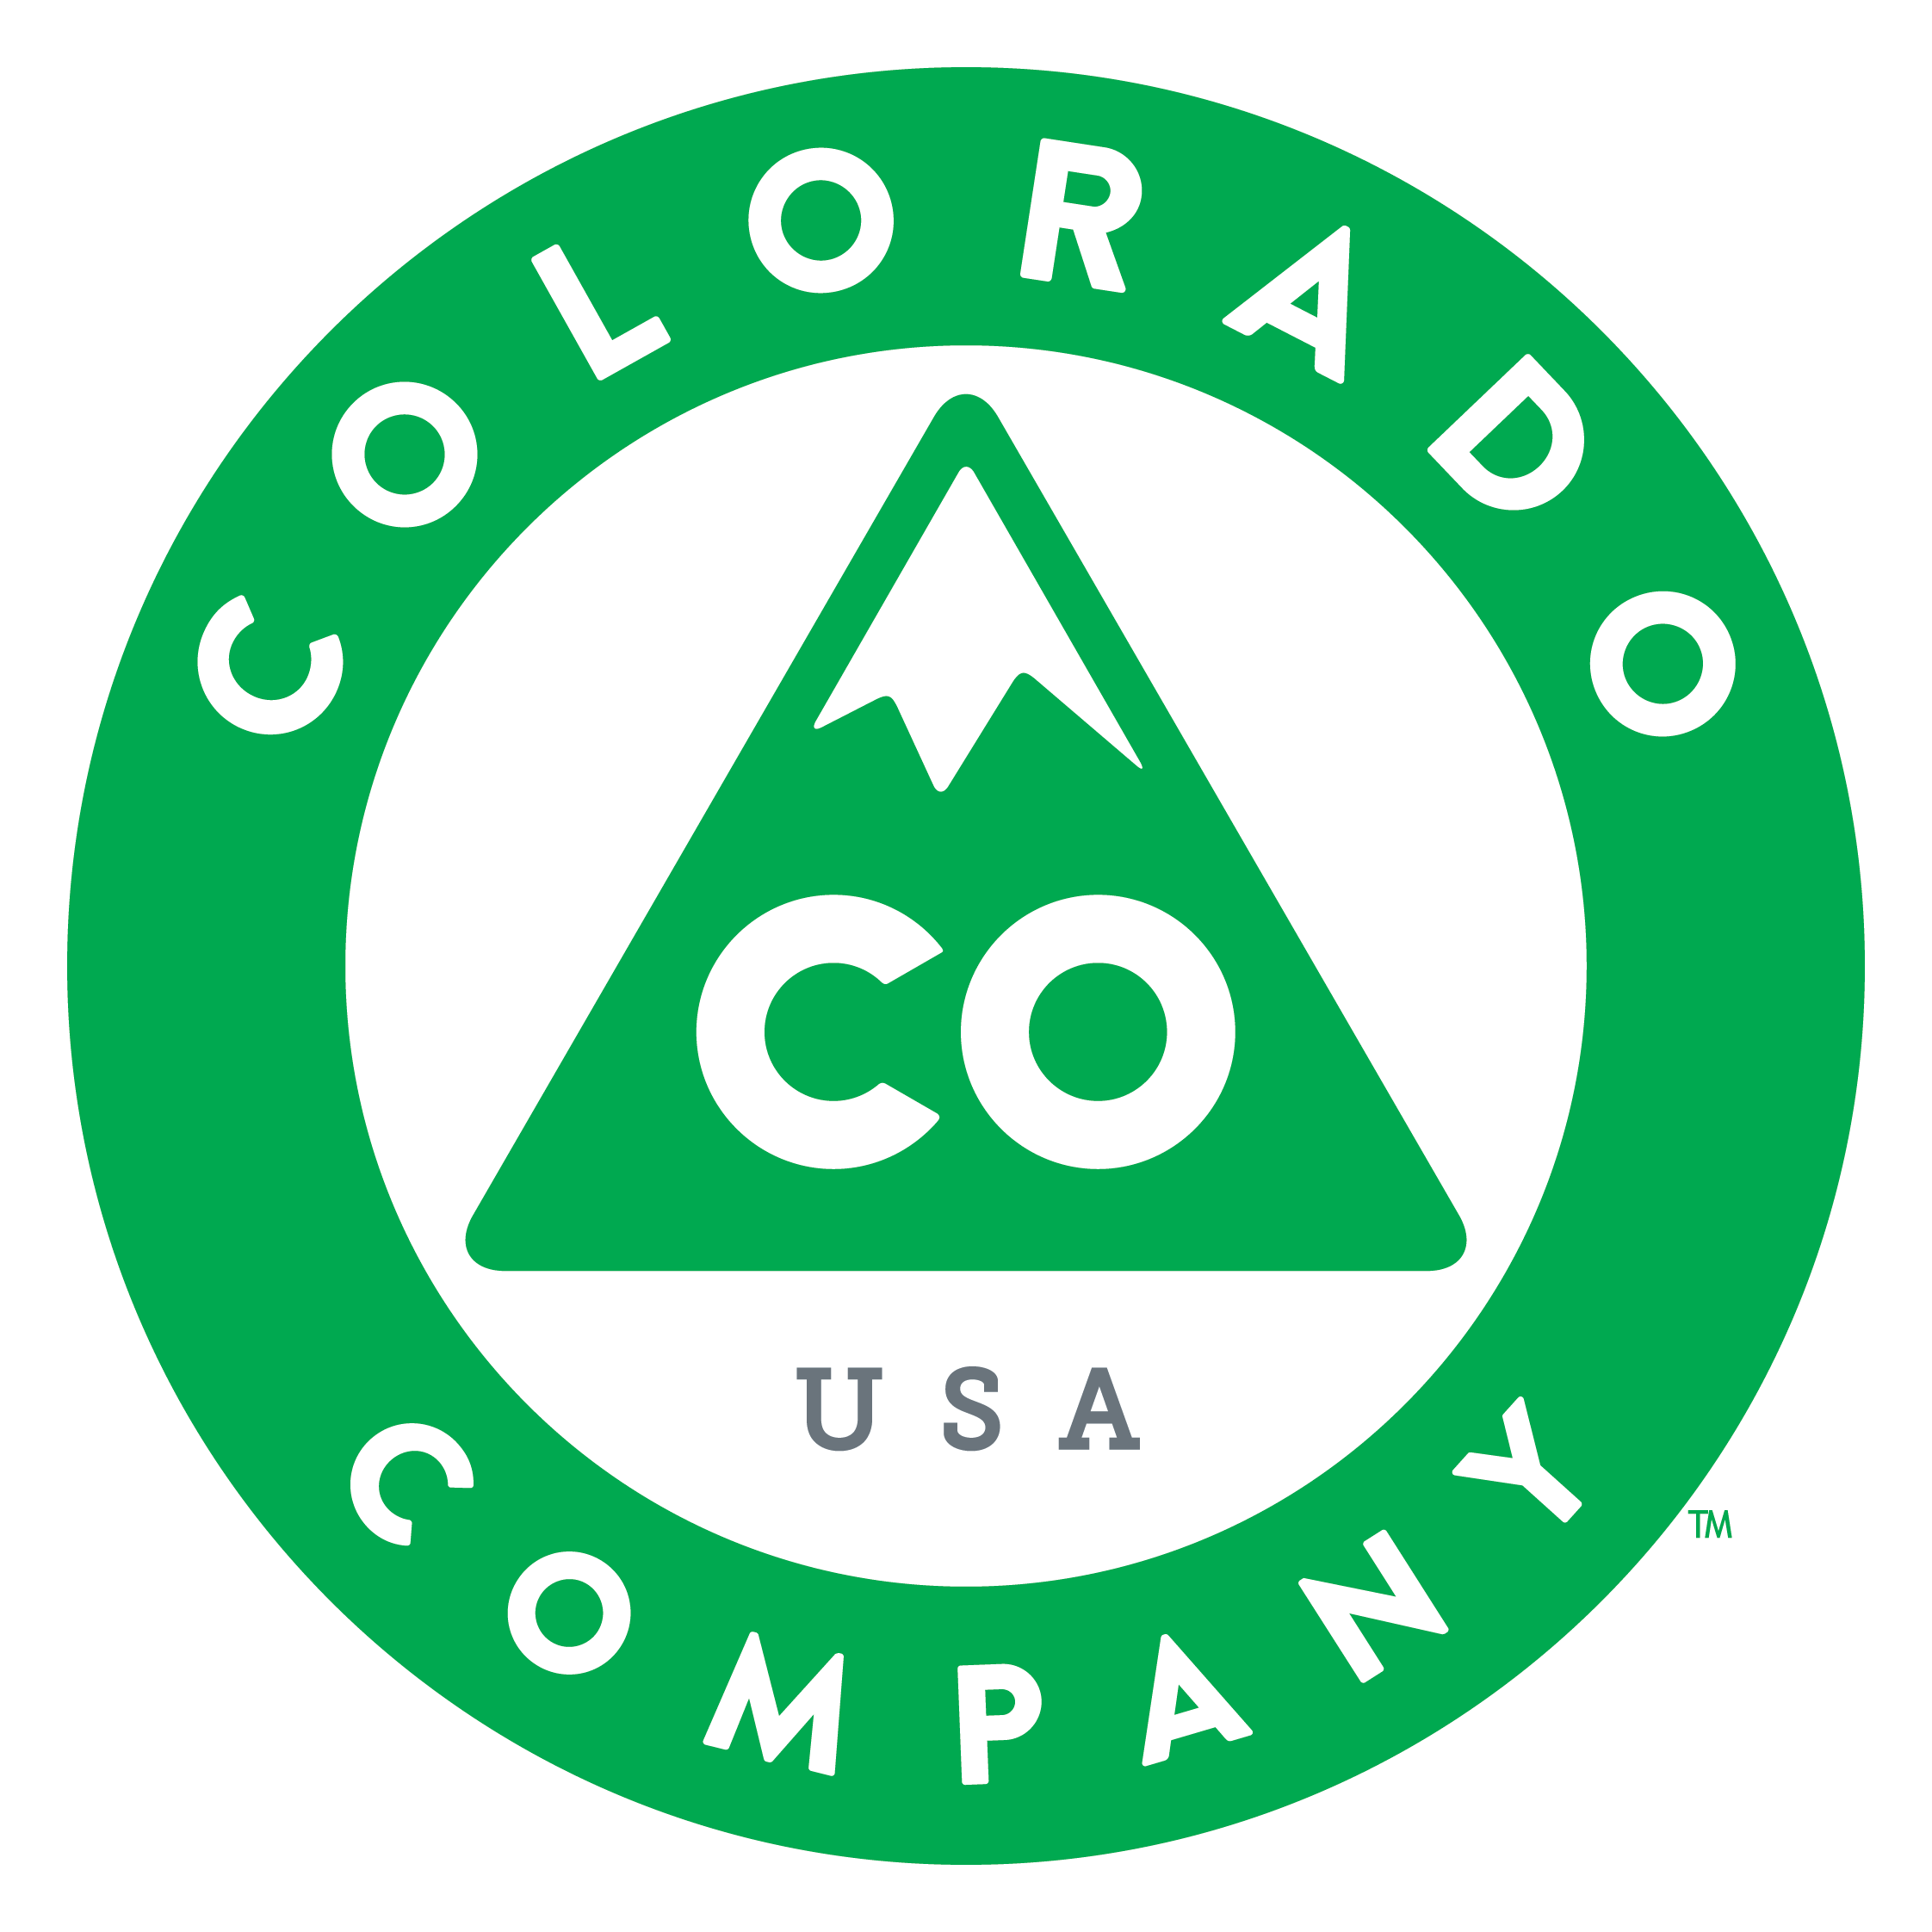 Colorado Company USA